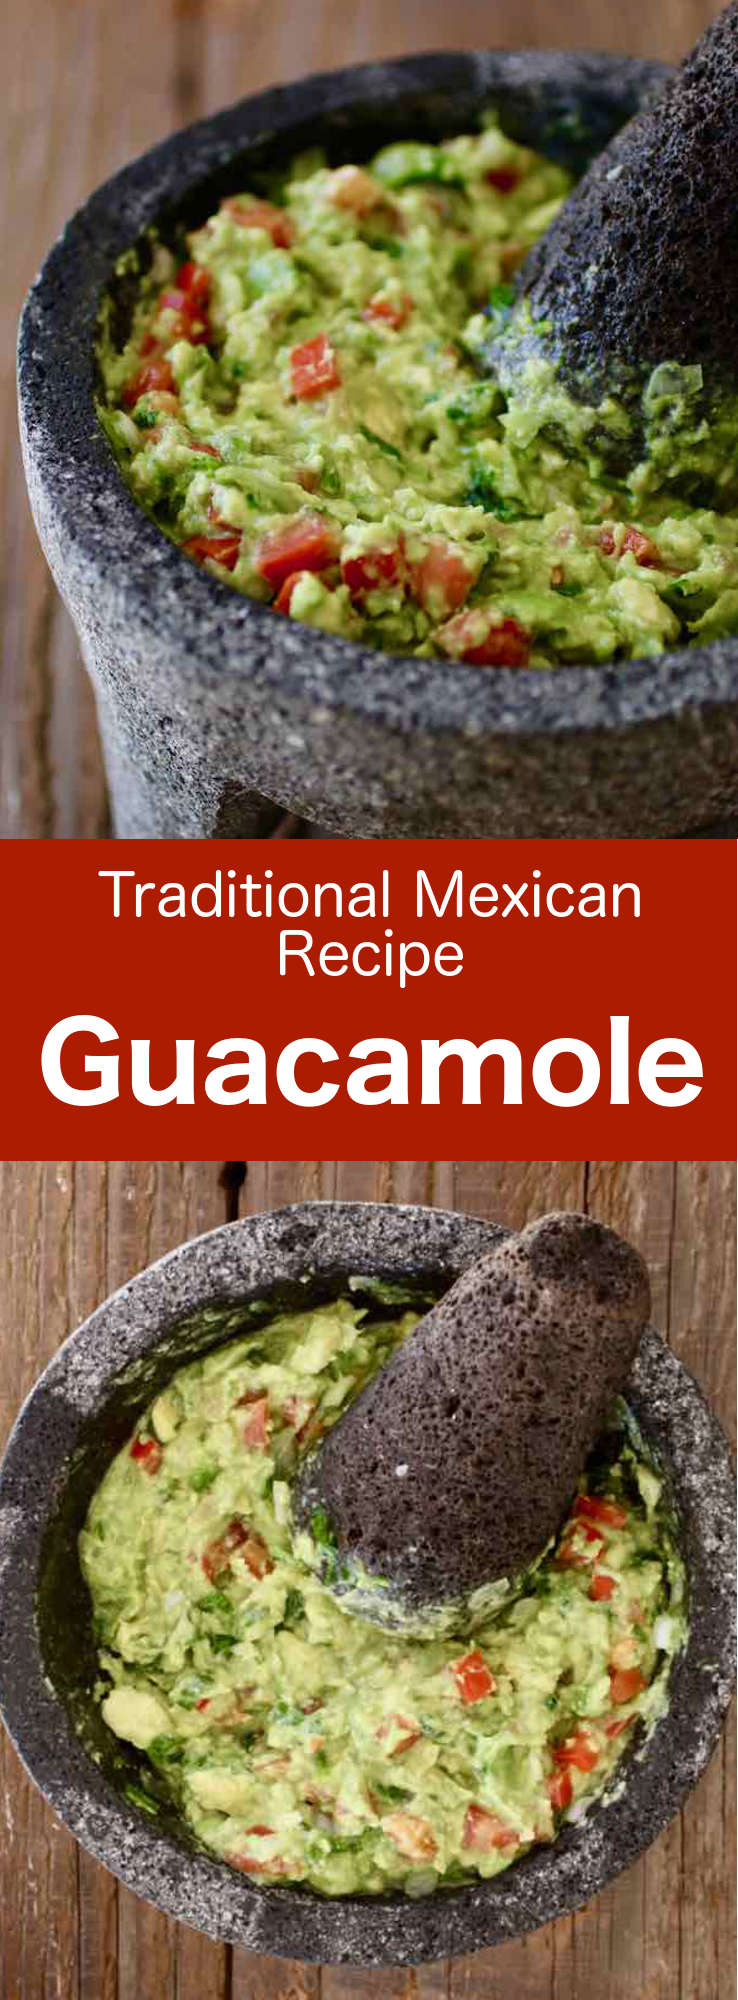 Guacamole is a delicious traditional Mexican dip prepared with ripe avocado, onion, chili pepper, cilantro, tomato, and lime. #Mexican #MexicanFood #MexicanCuisine #MexicanRecipe #WorldCuisine #196flavors